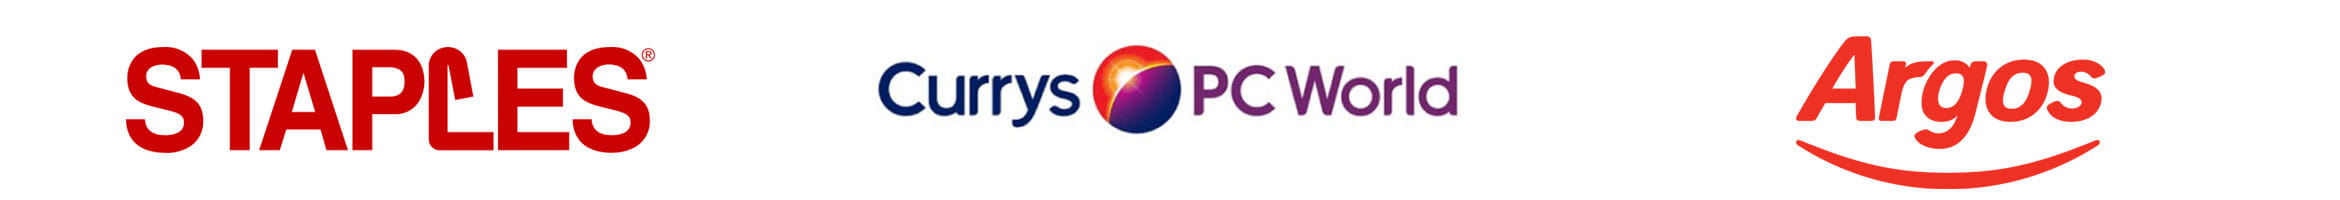 Brother trusted retailers - Staples, Currys PC World and Argos logos